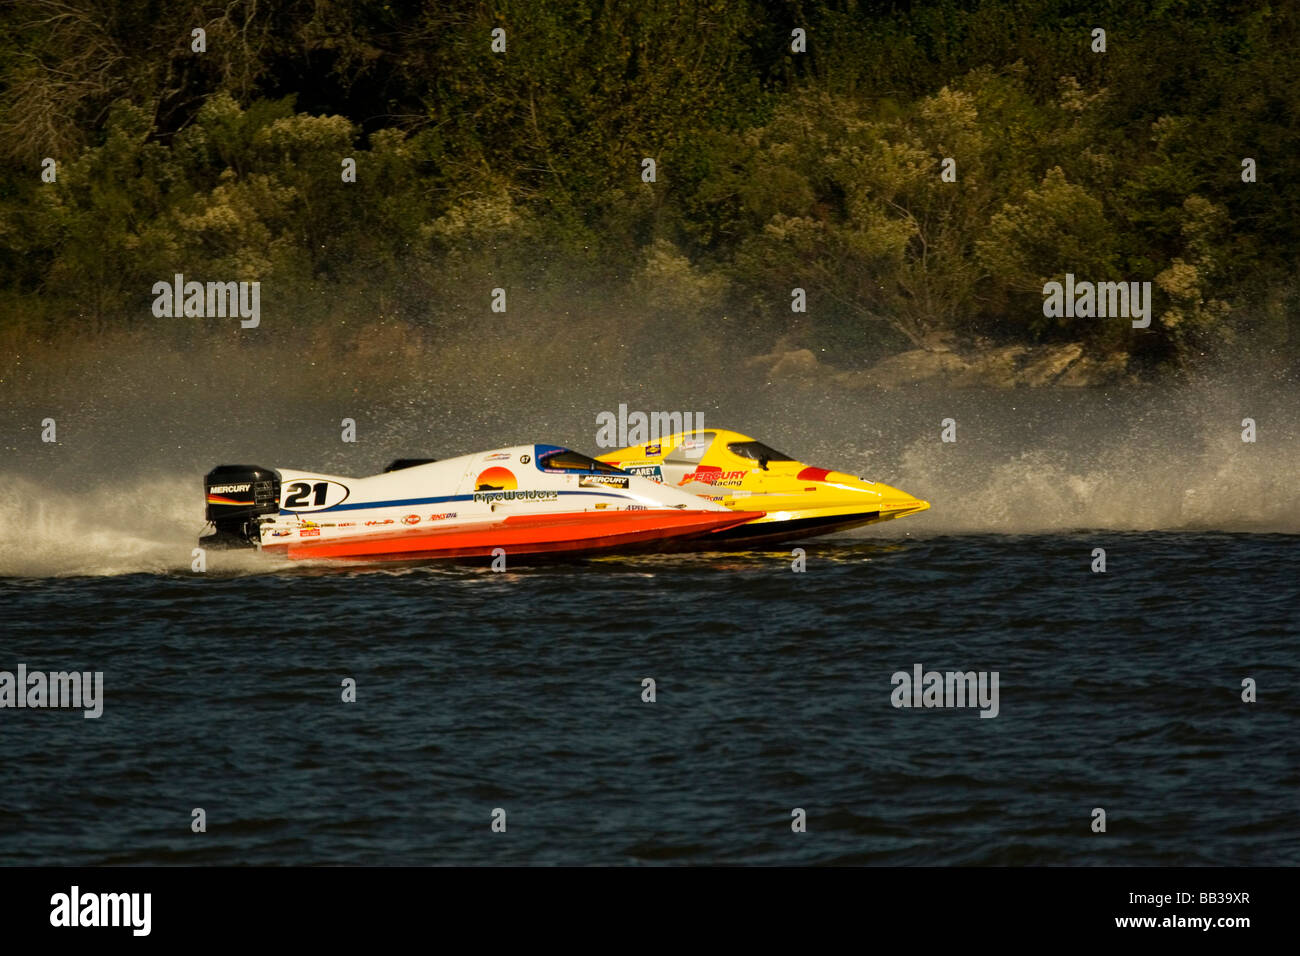 Champ Boat Grand Prix Series Stock Photos Champ Boat Grand Prix